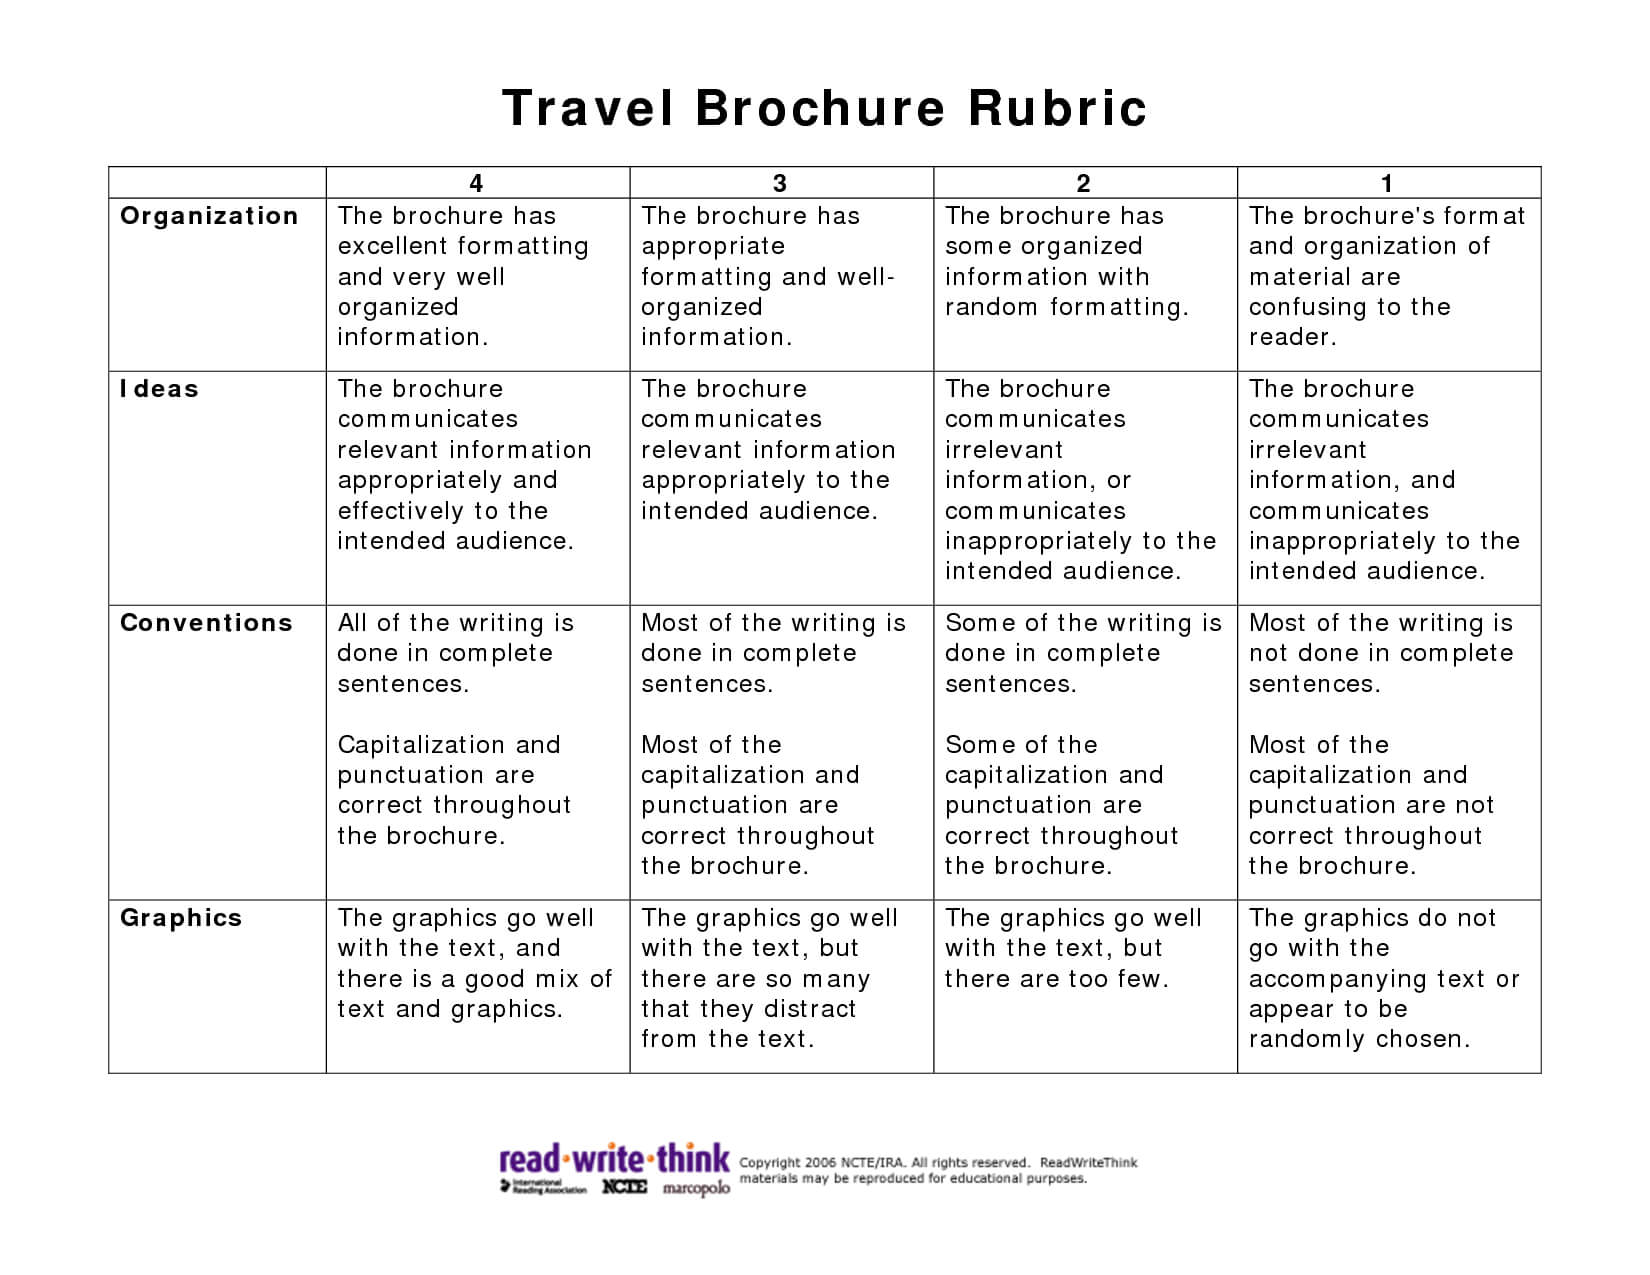 Travel Brochure Rubric Pdf Picture | Social Studies In Brochure Rubric Template